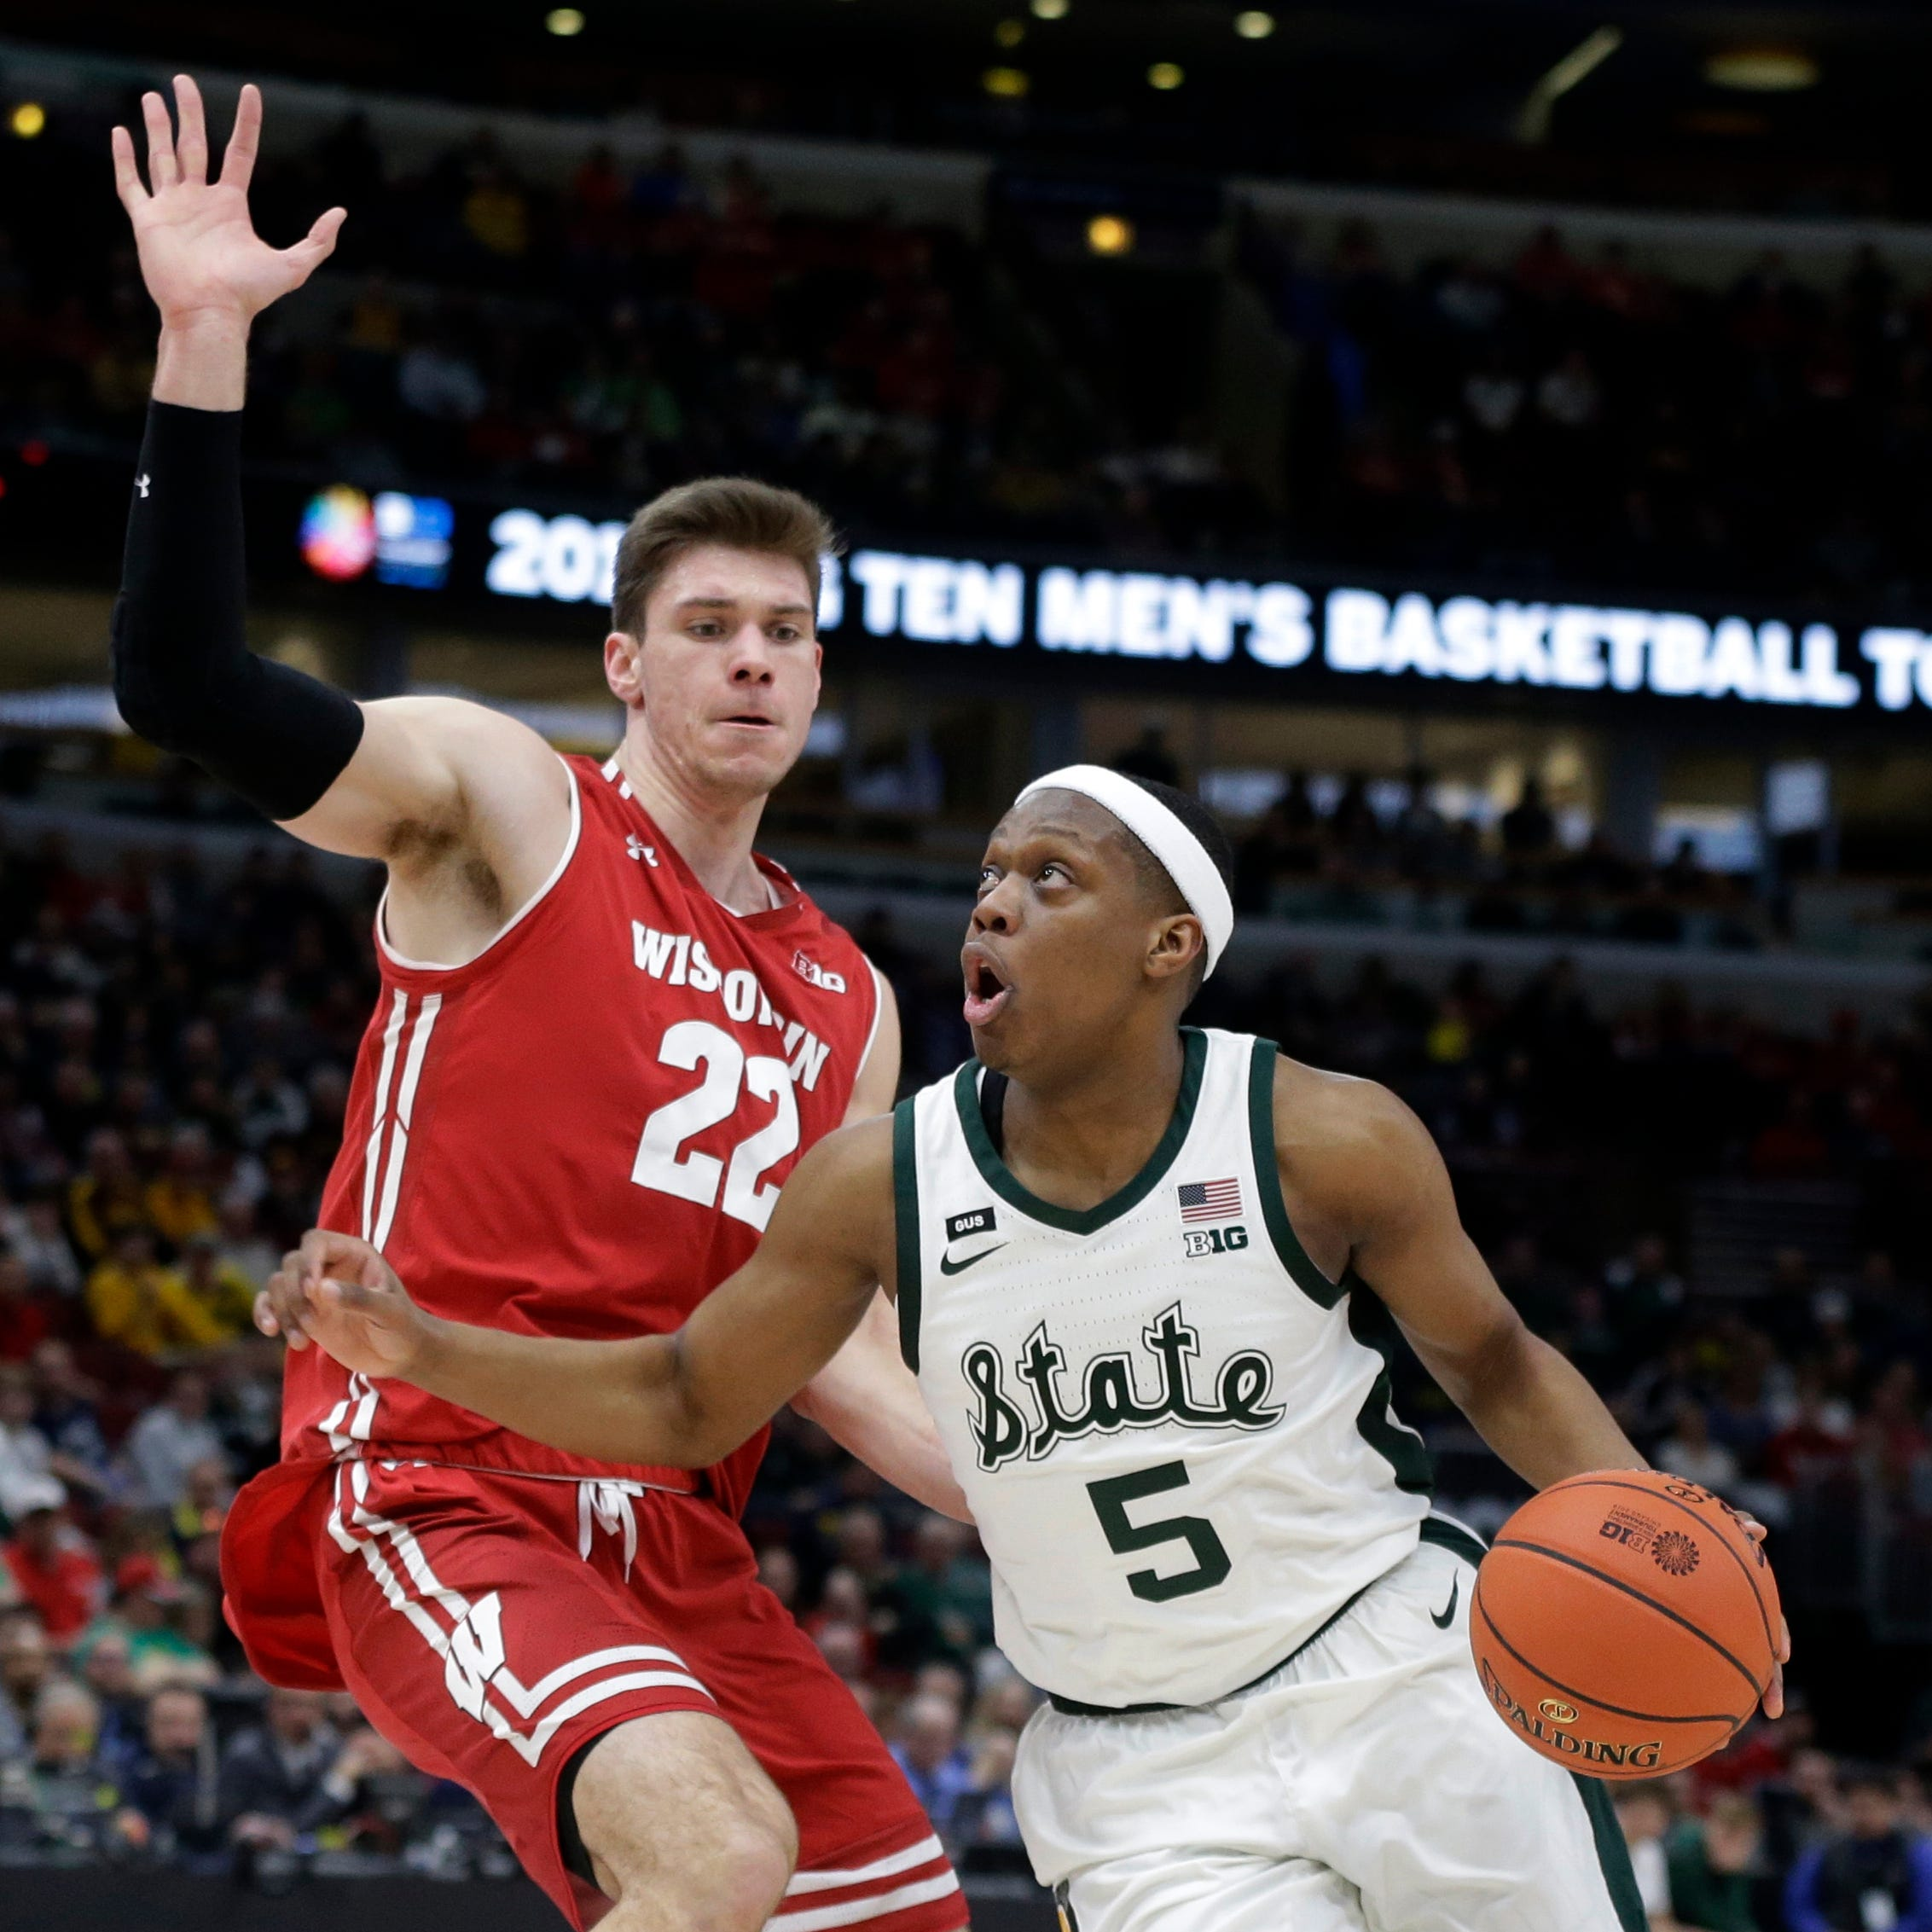 'Ready for the challenge': Cassius Winston leads MSU into Big Ten final for rematch vs. UM